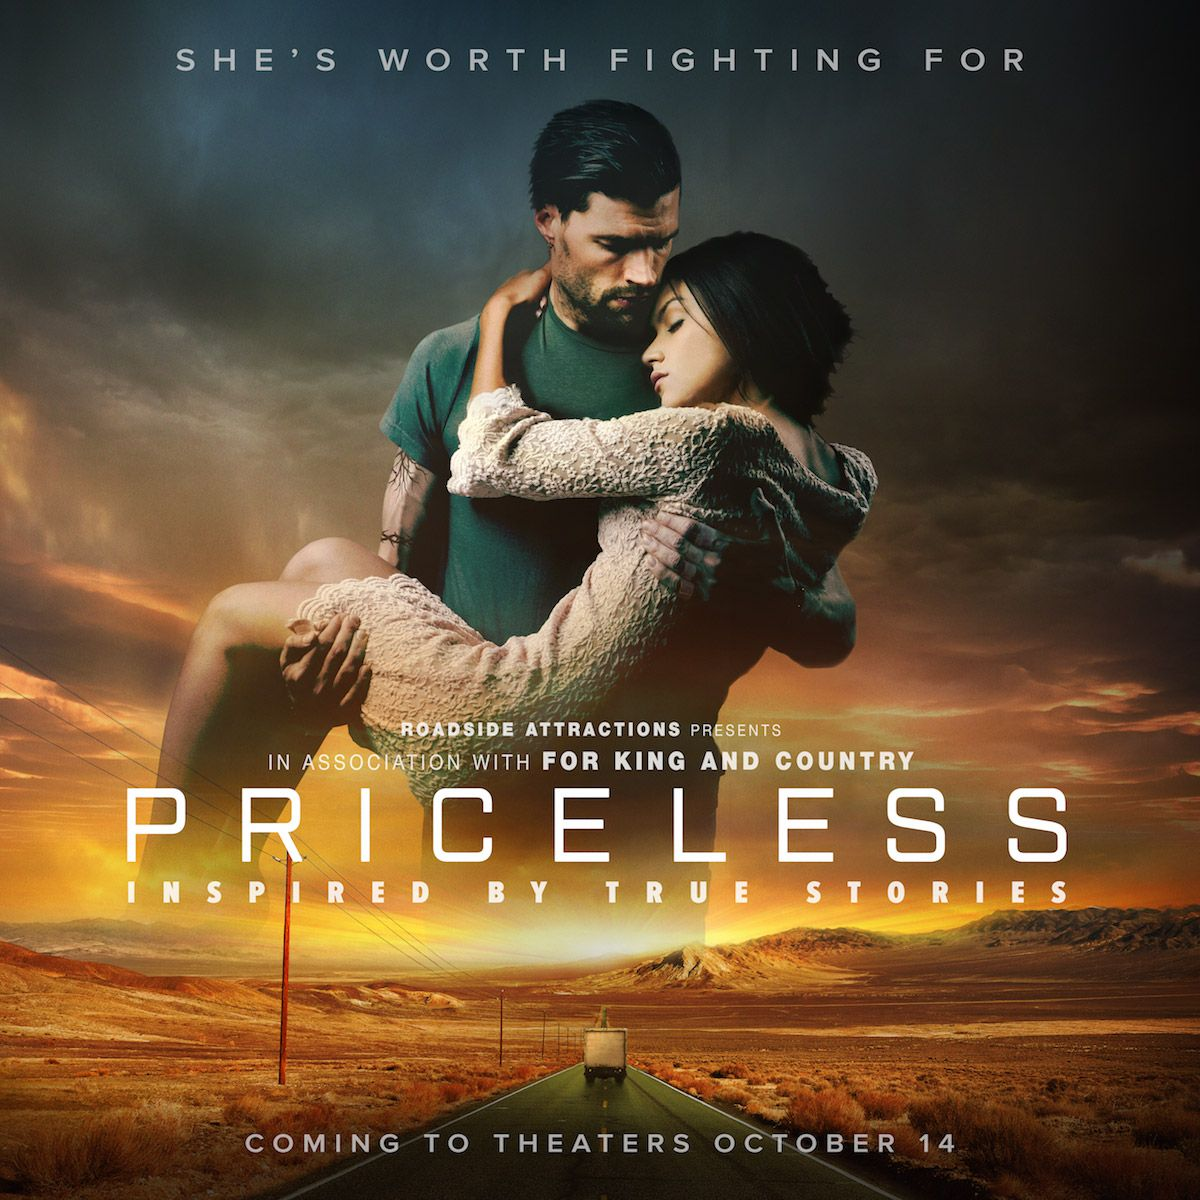 In Priceless, the first movie from Luke and Joel Smallbone, the ...